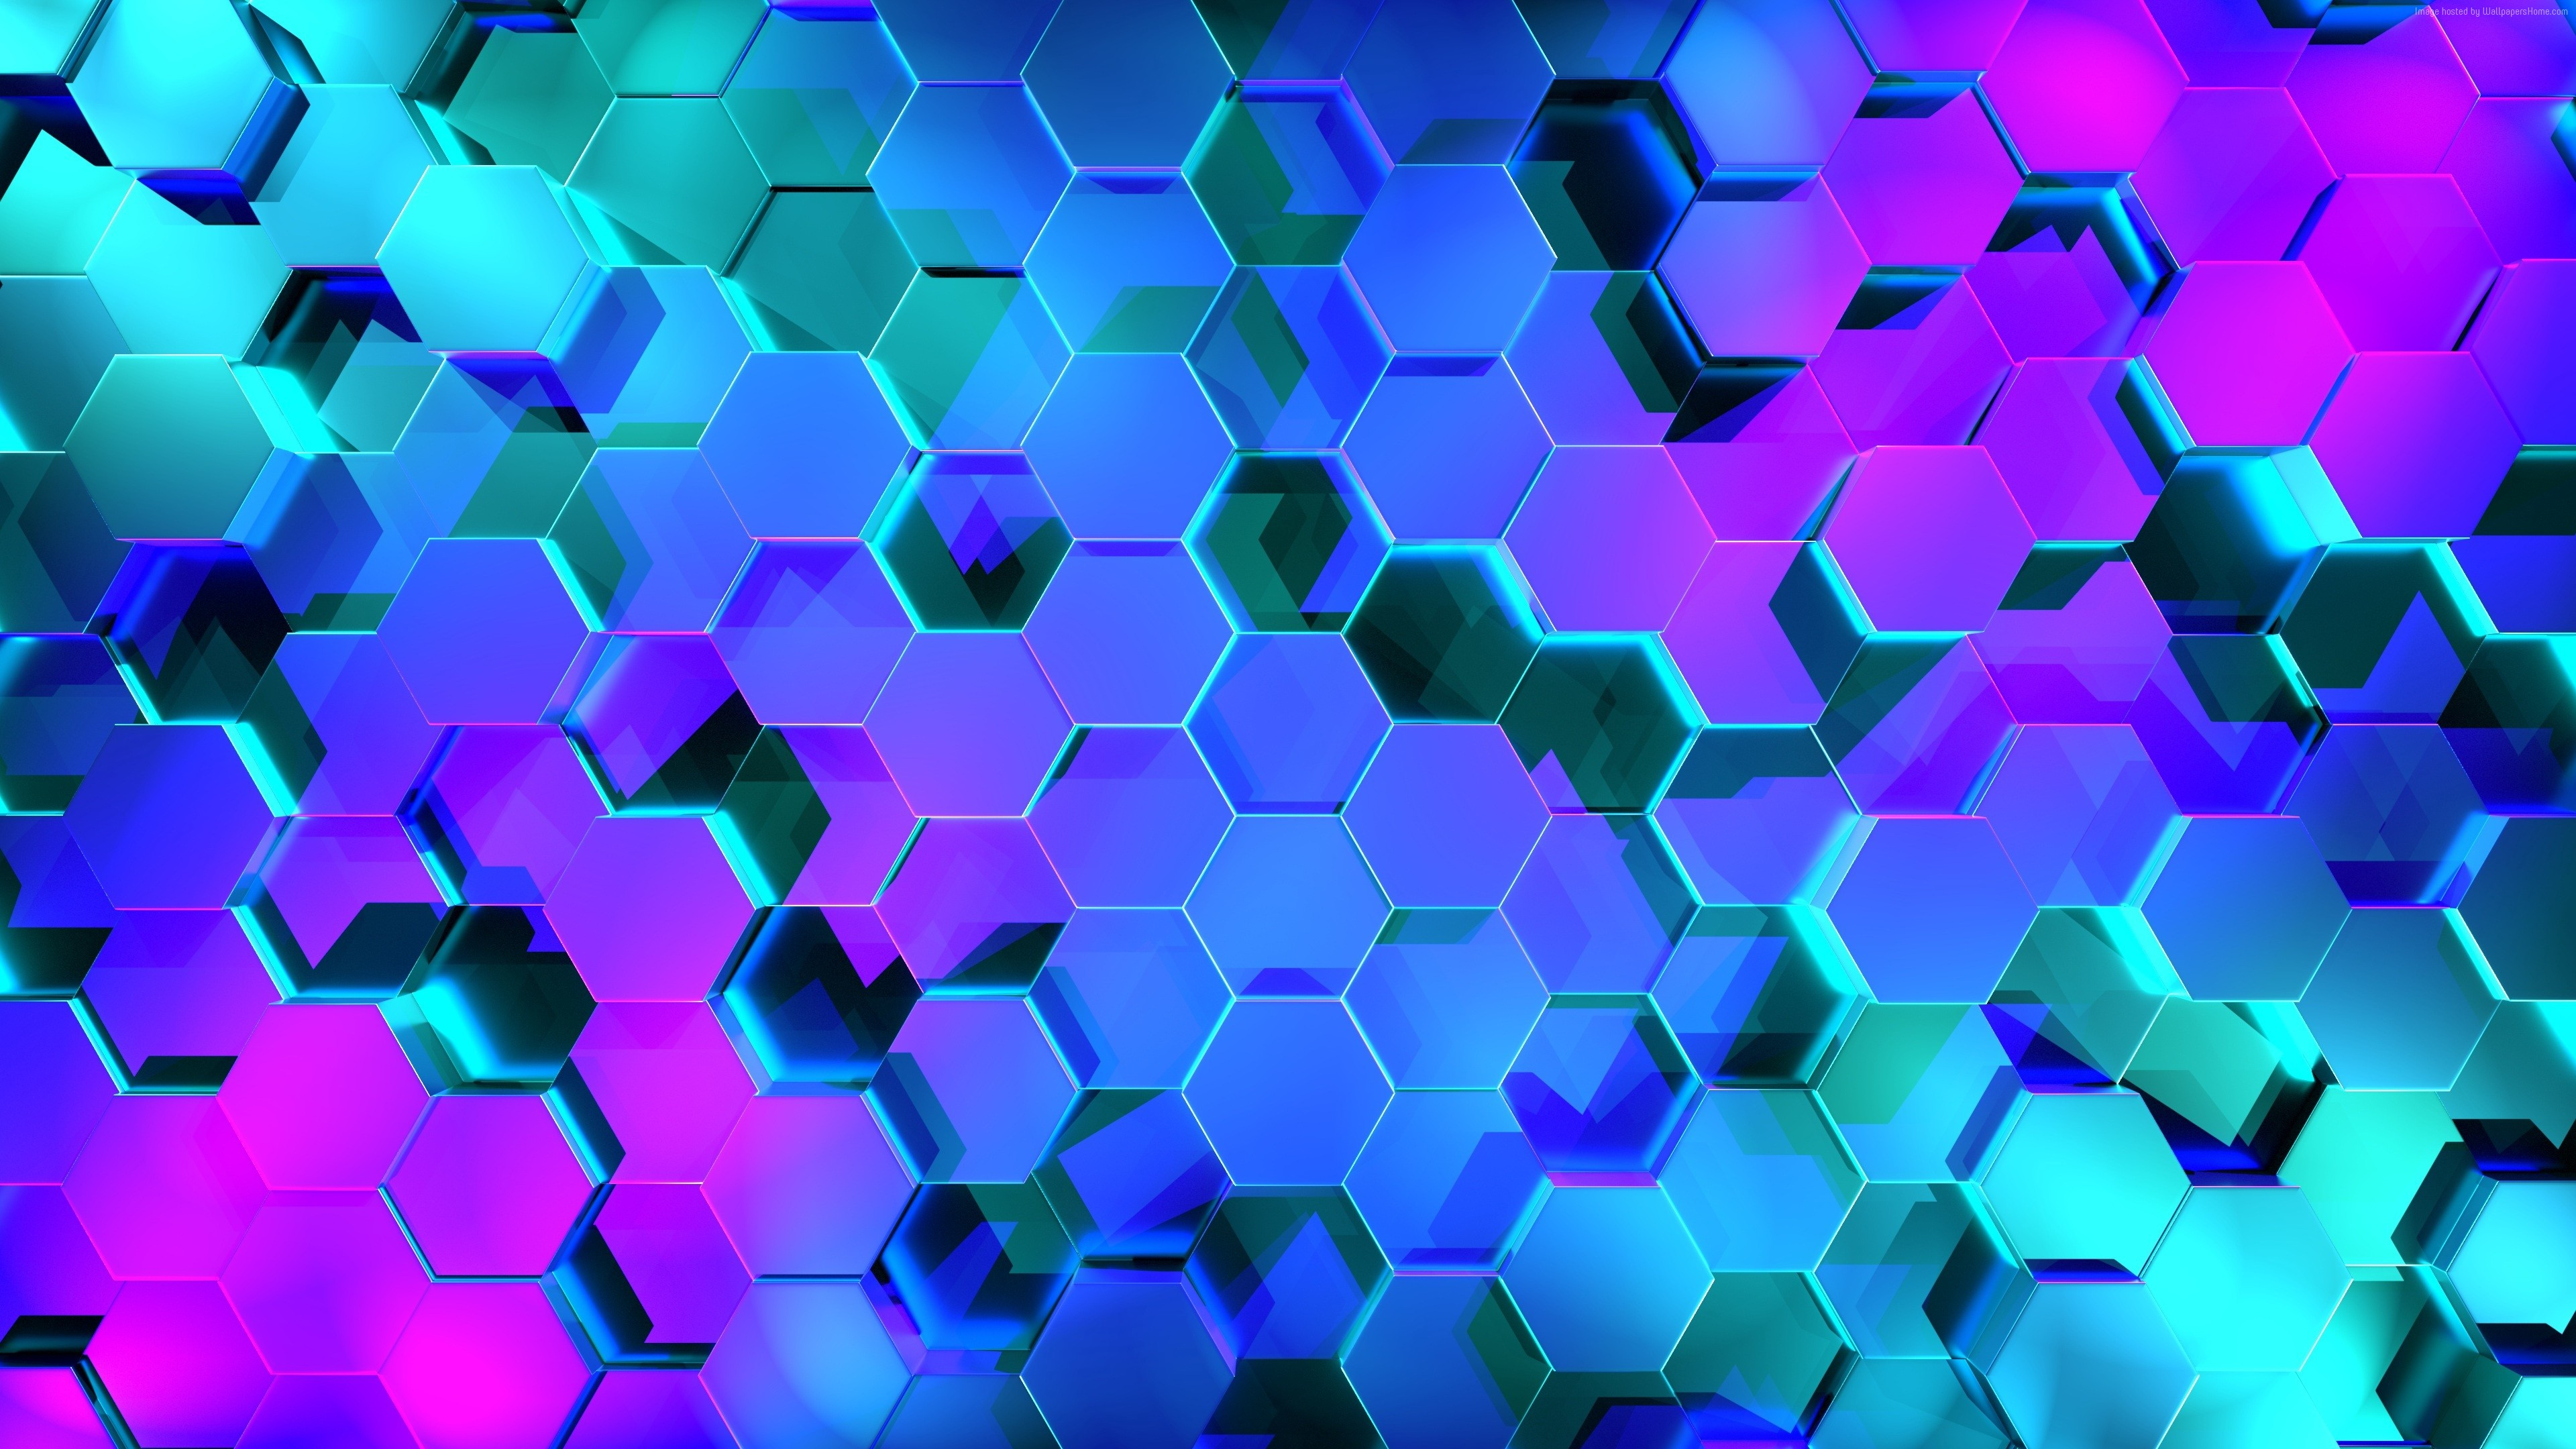 Wallpaper Geometry, Hexagon, Colors, 3D, 4K, Abstract